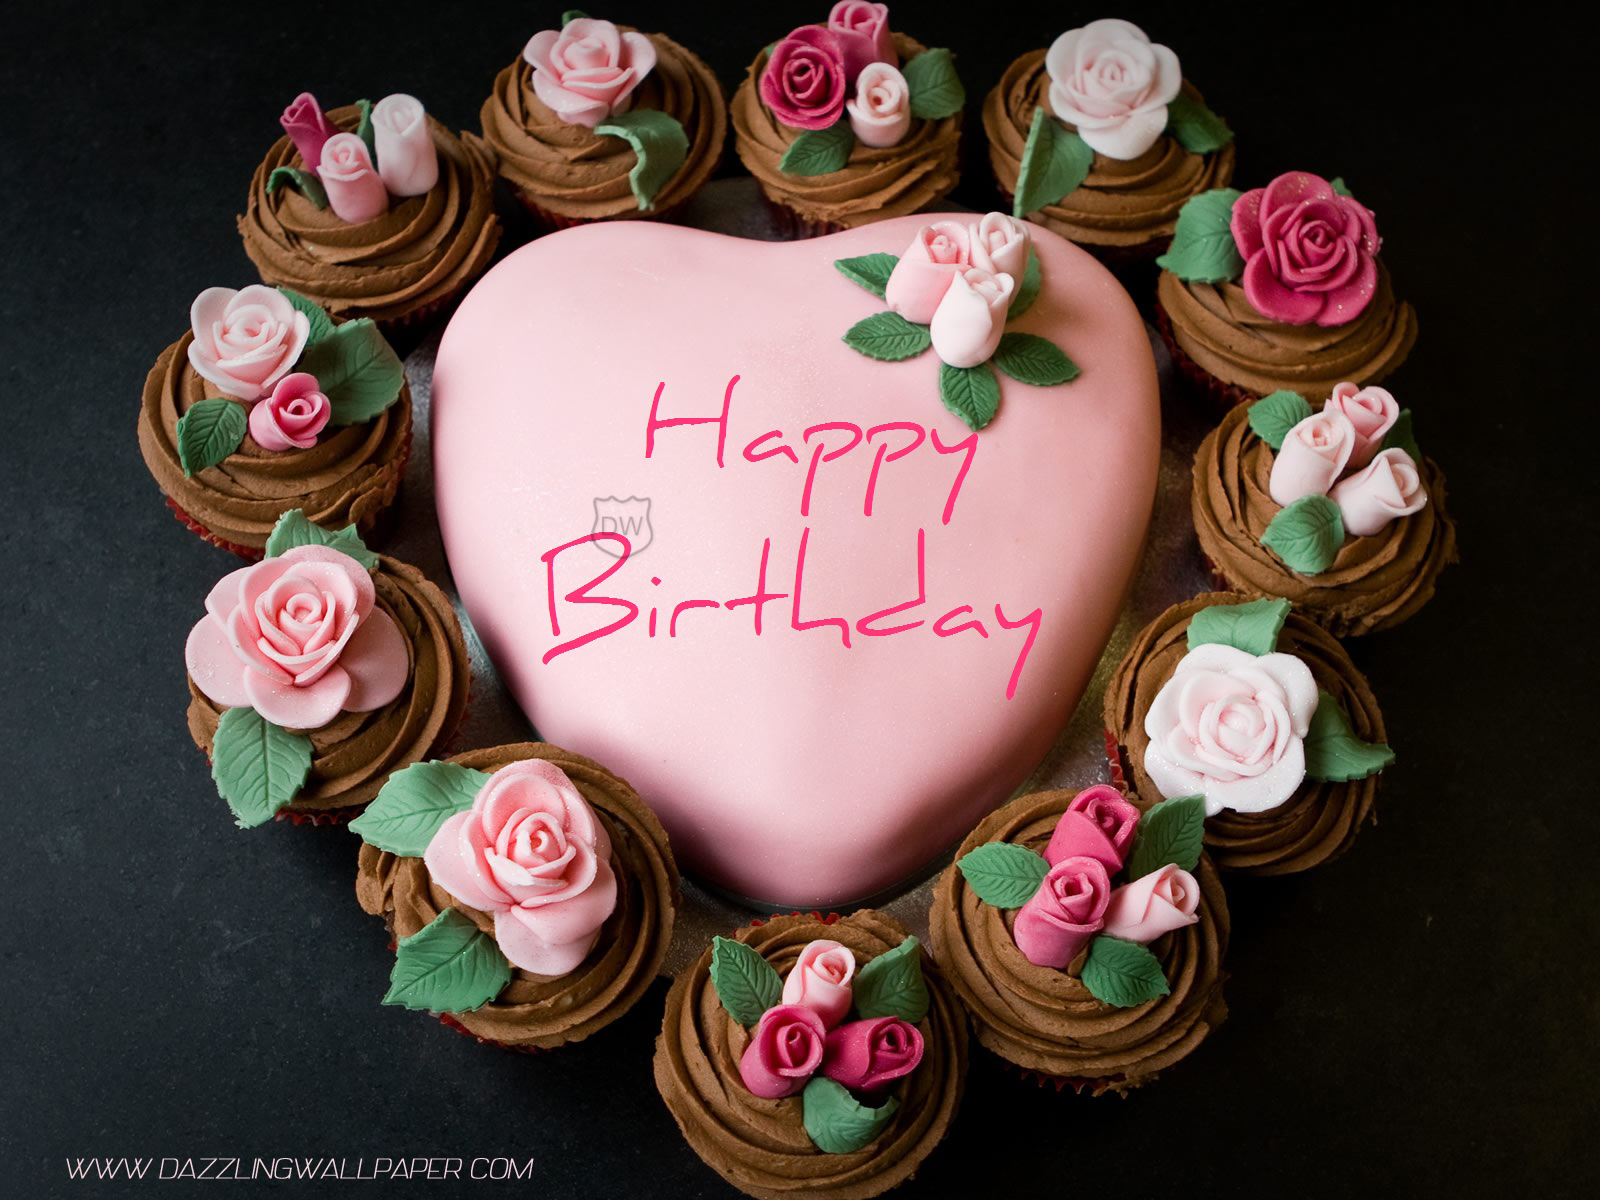 20 Photos of the Beauty Heart Birthday Cake Ideas